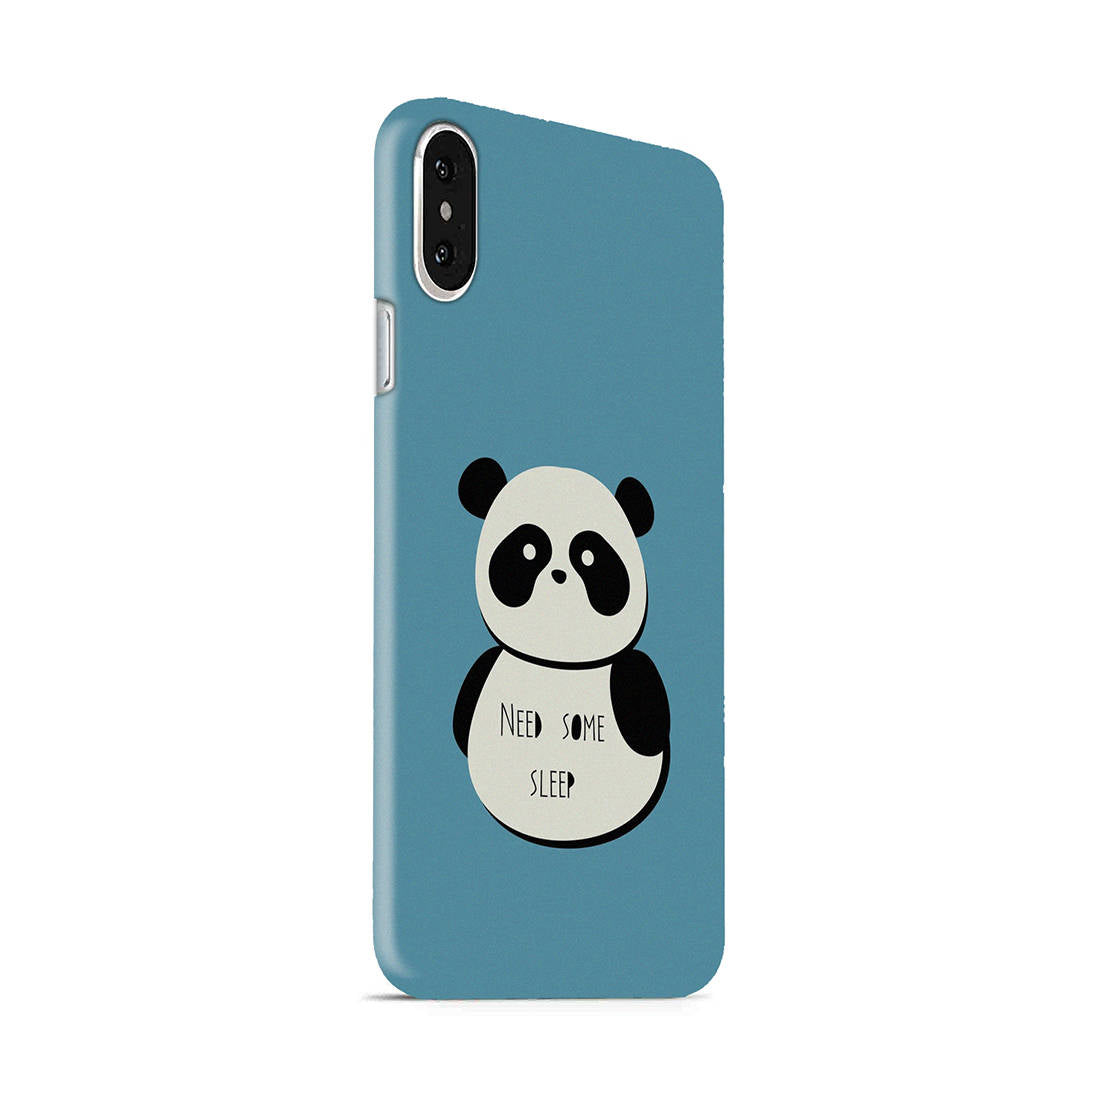 Sleepy Panda iPhone X Mobile Cover Case - MADANYU